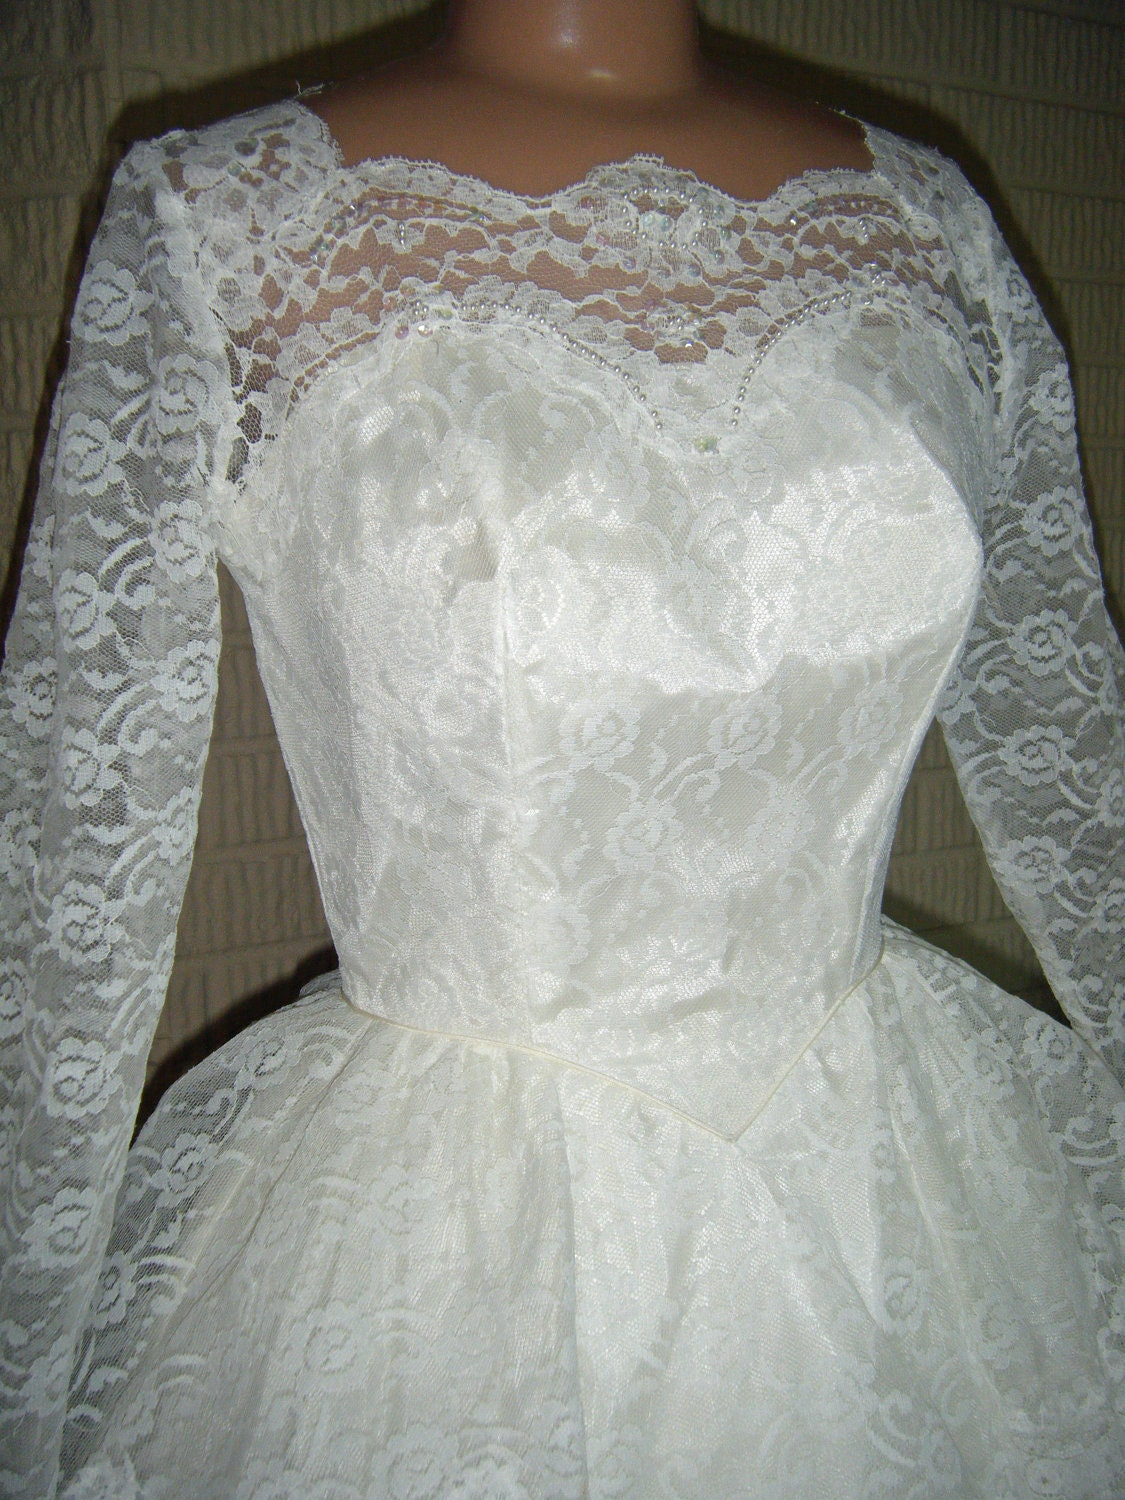 Items Similar To Vintage Wedding Dress Lace 1960s On Etsy